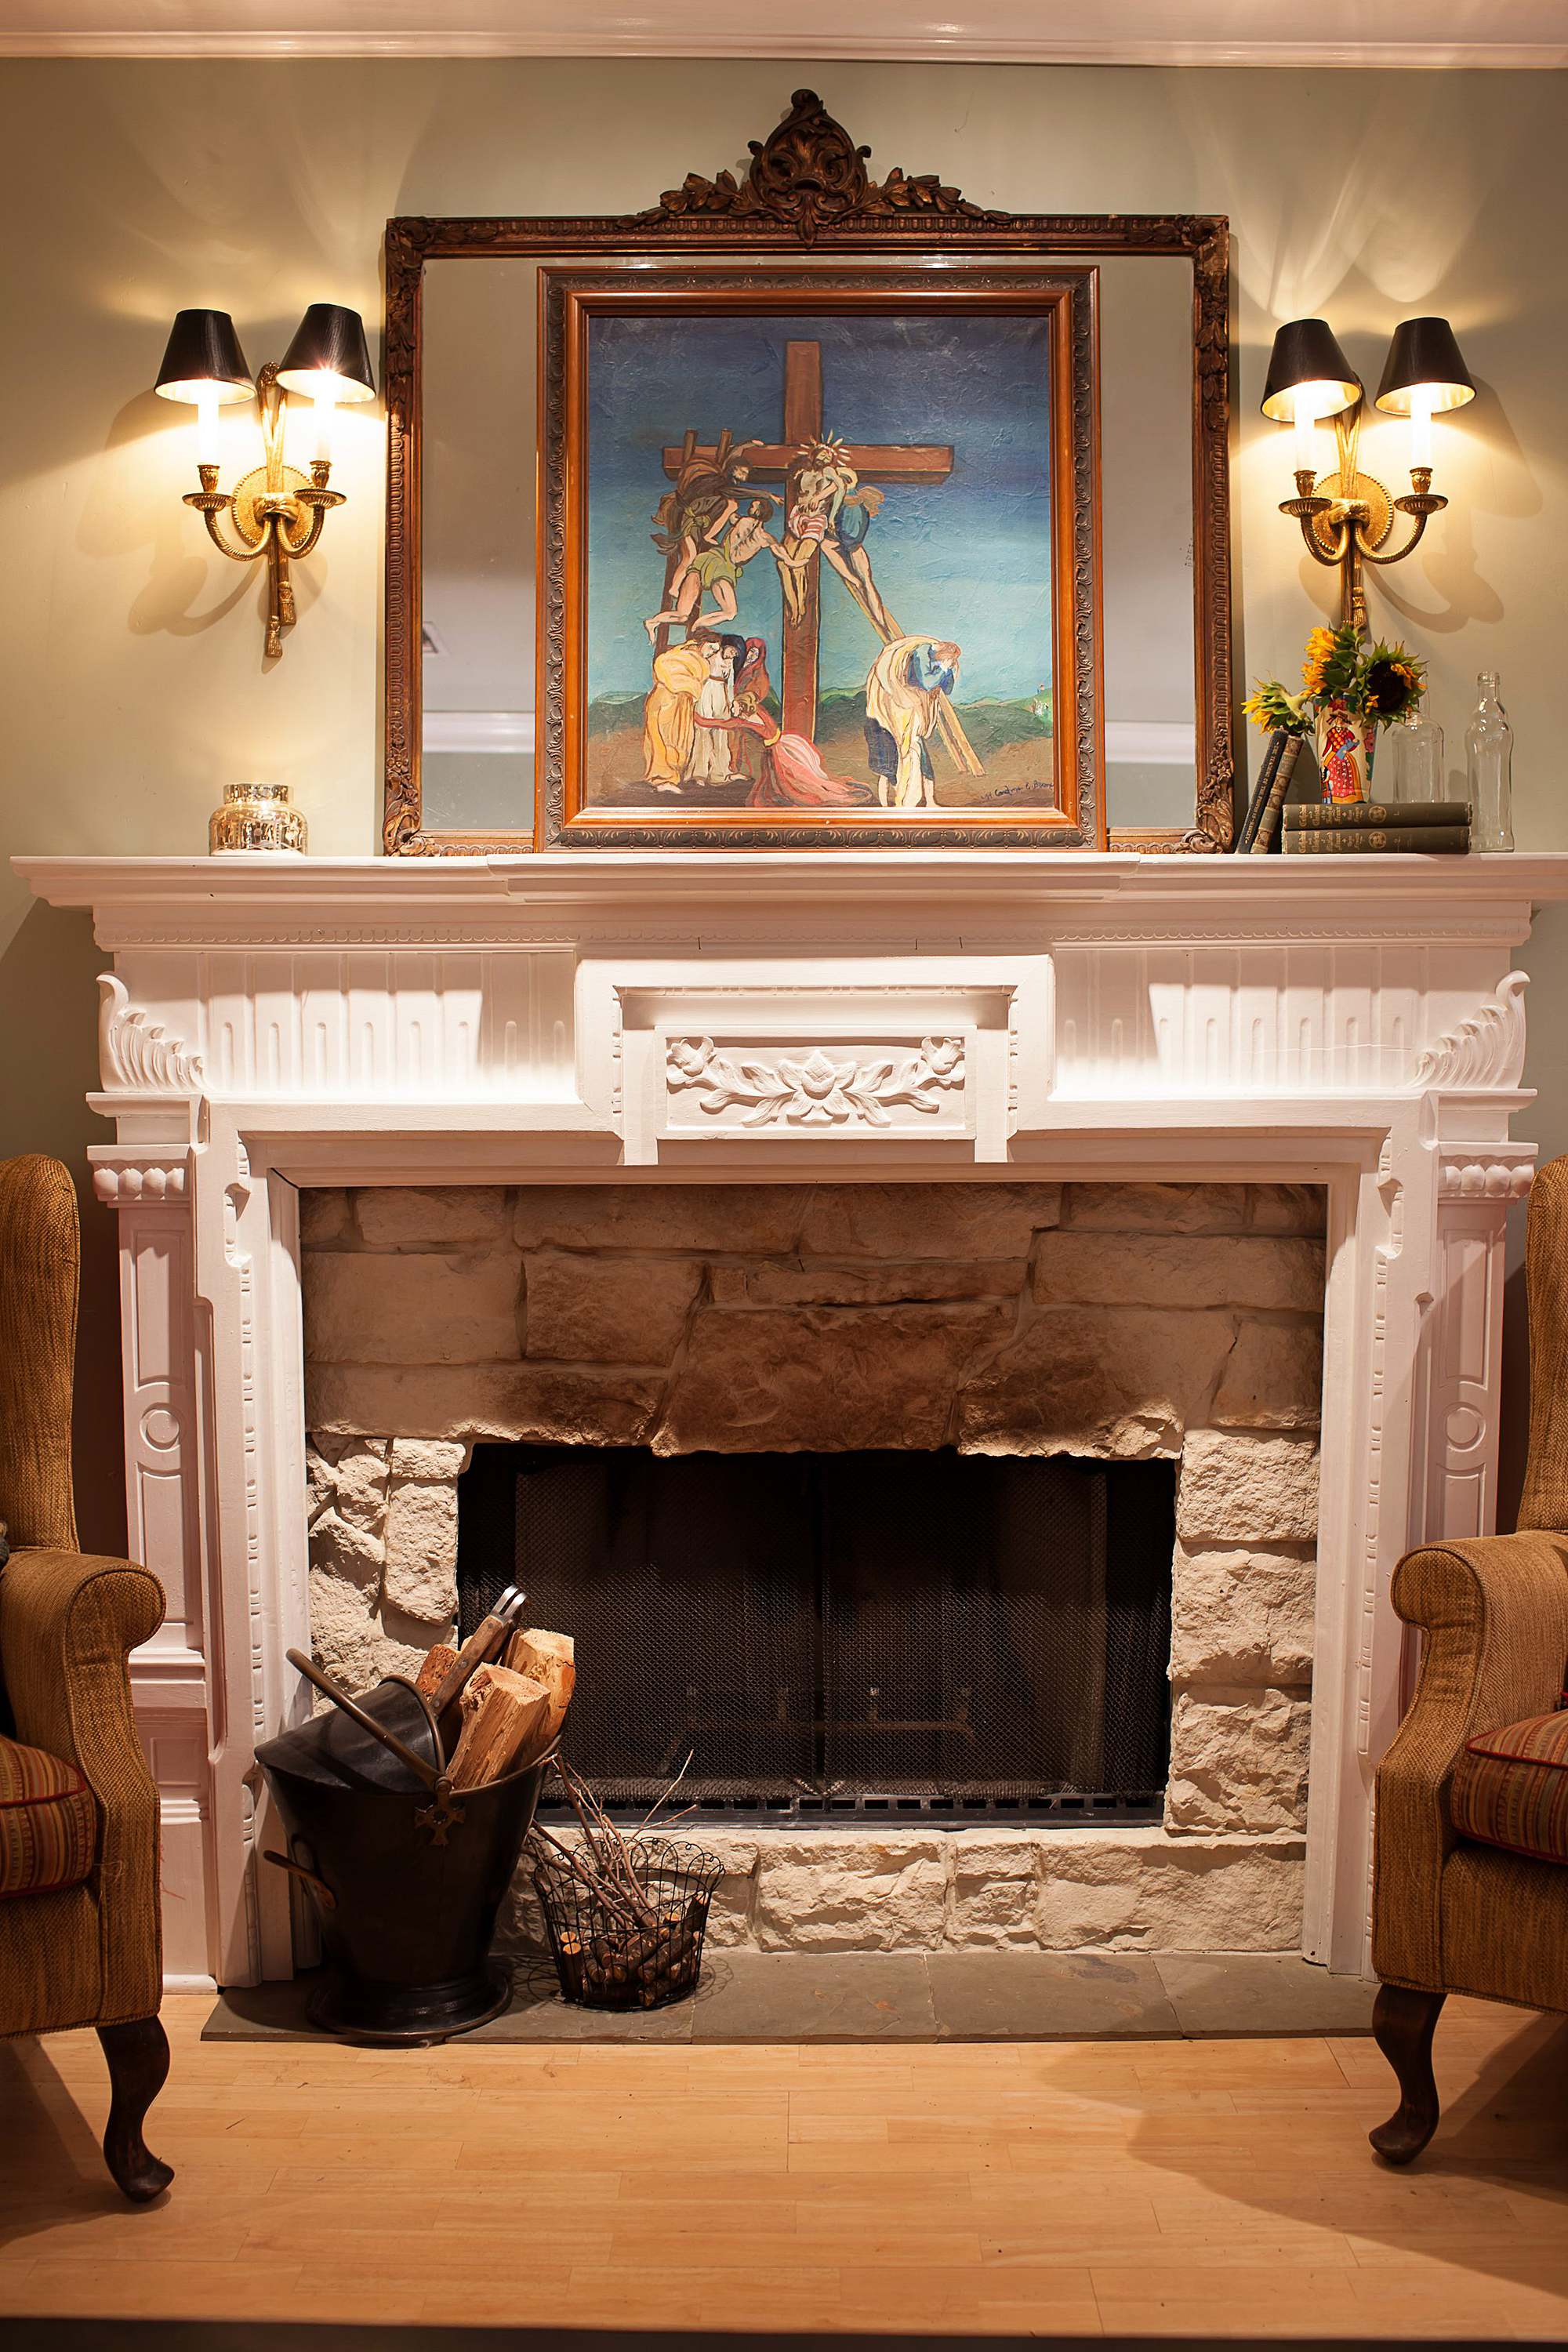 fire place living room family room country farmhouse small seating area entryway console home decor boho farm and home cottage English cottage style cozy feels phoenix arizona